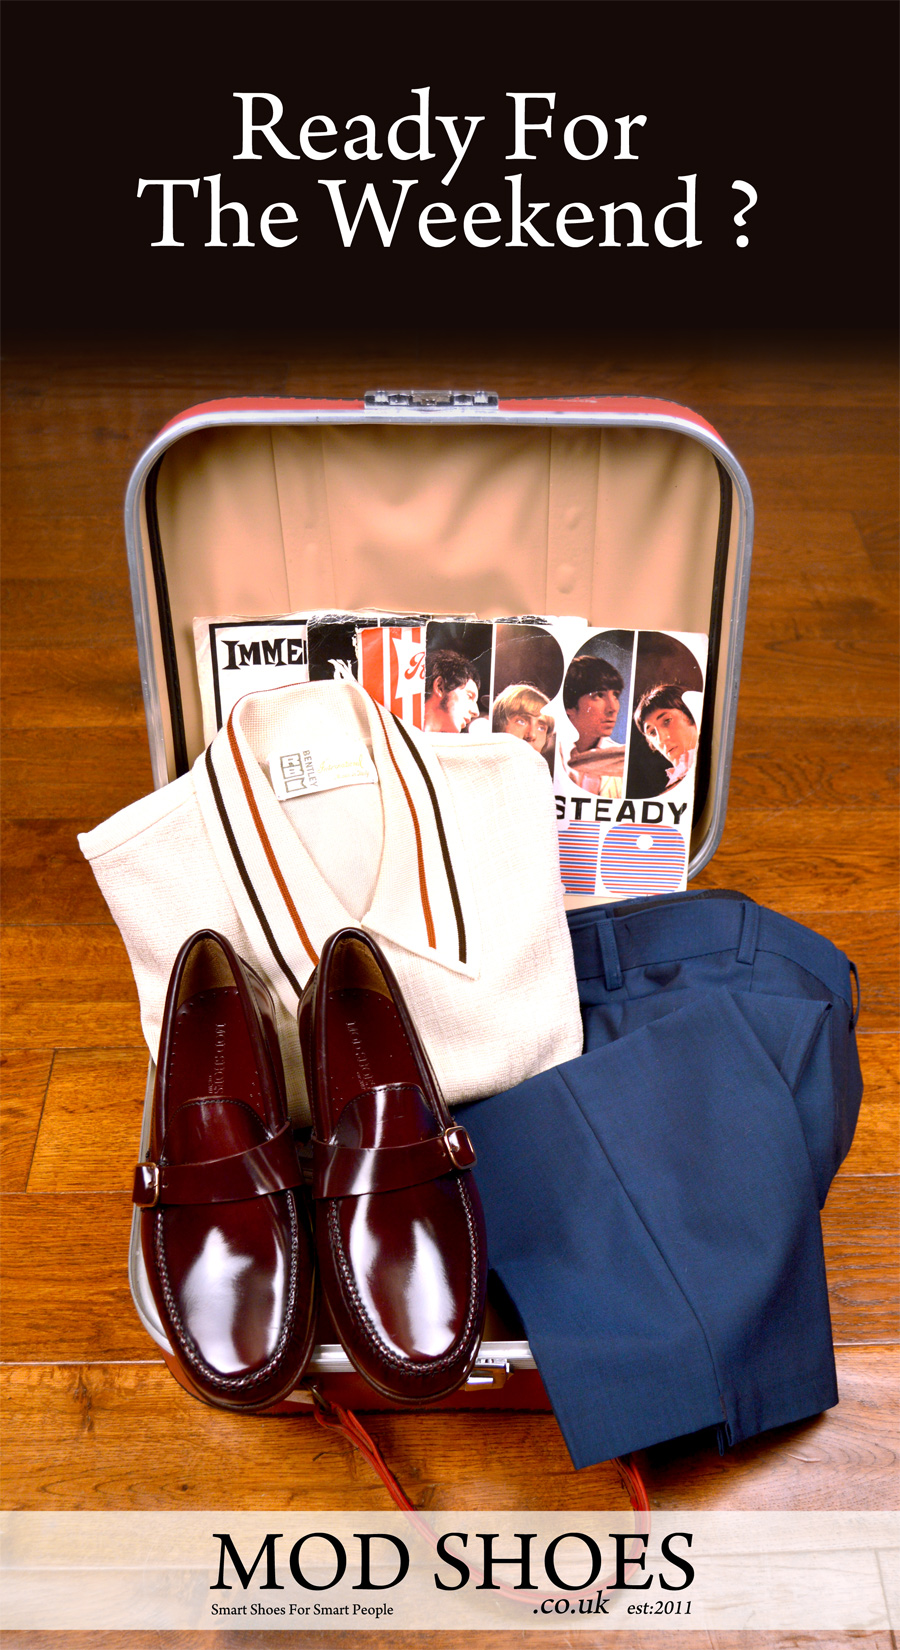 modshoes-lords-ready-for-the-weekend-01